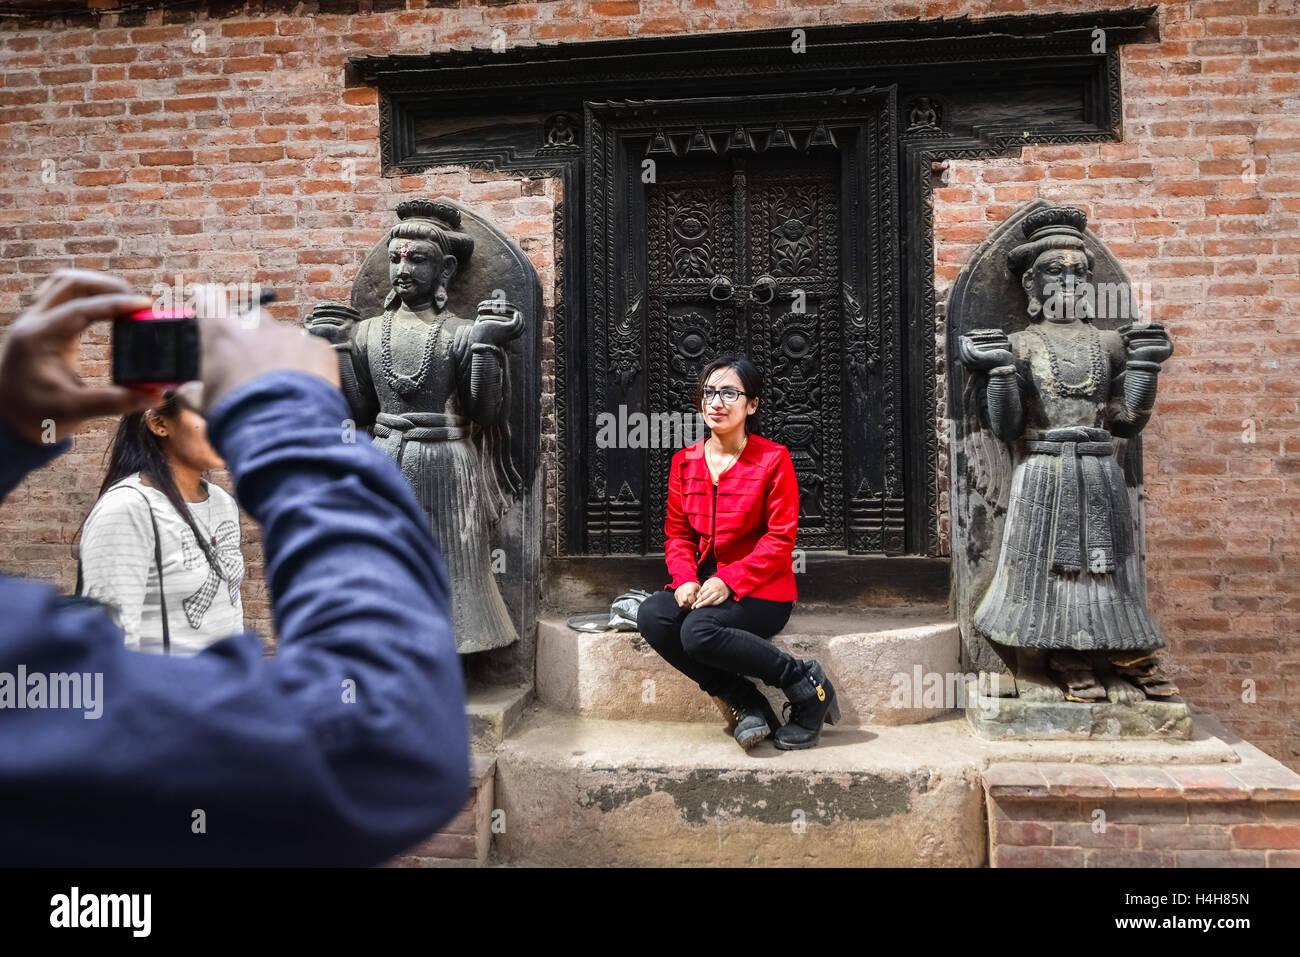 People taking a photo in the historic building of Bhaktapur, Nepal. © Reynold Sumayku - Stock Image